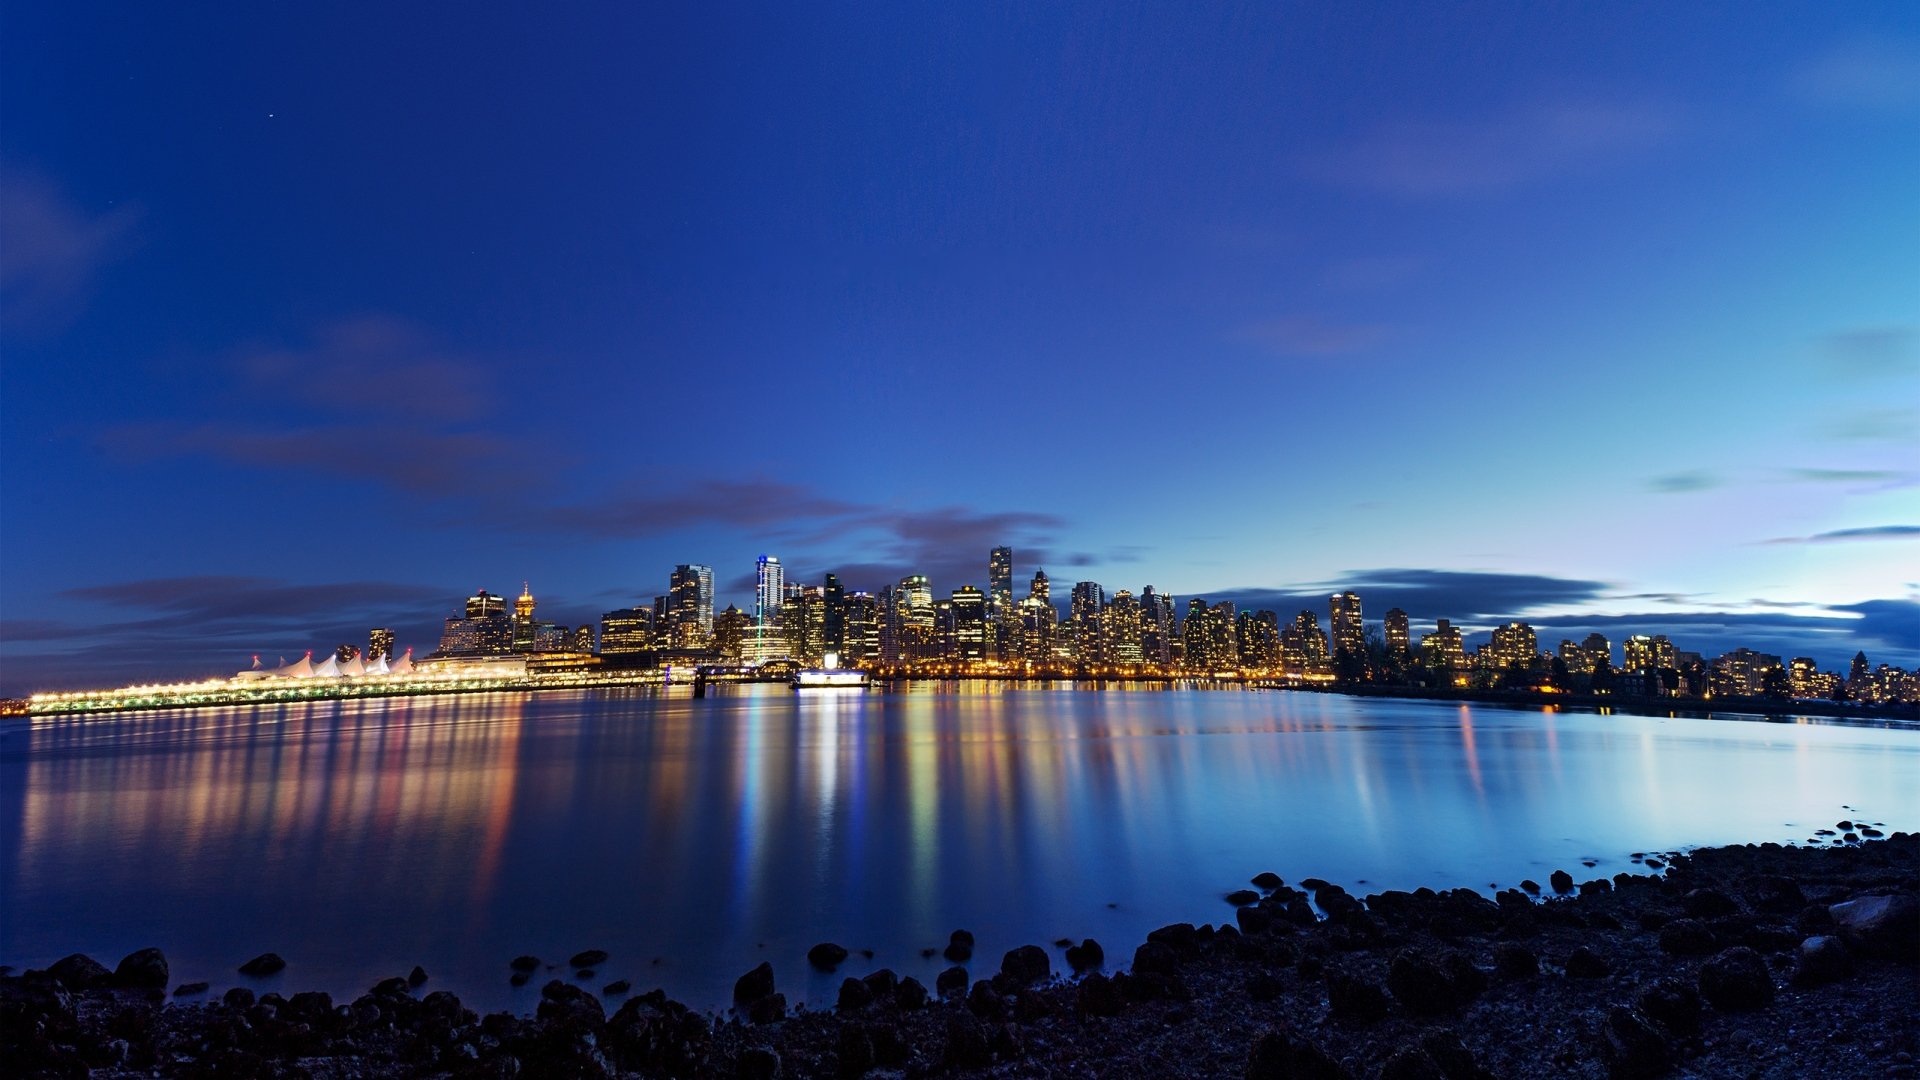 Vancouver Wallpapers and Background Images   stmednet 1920x1080